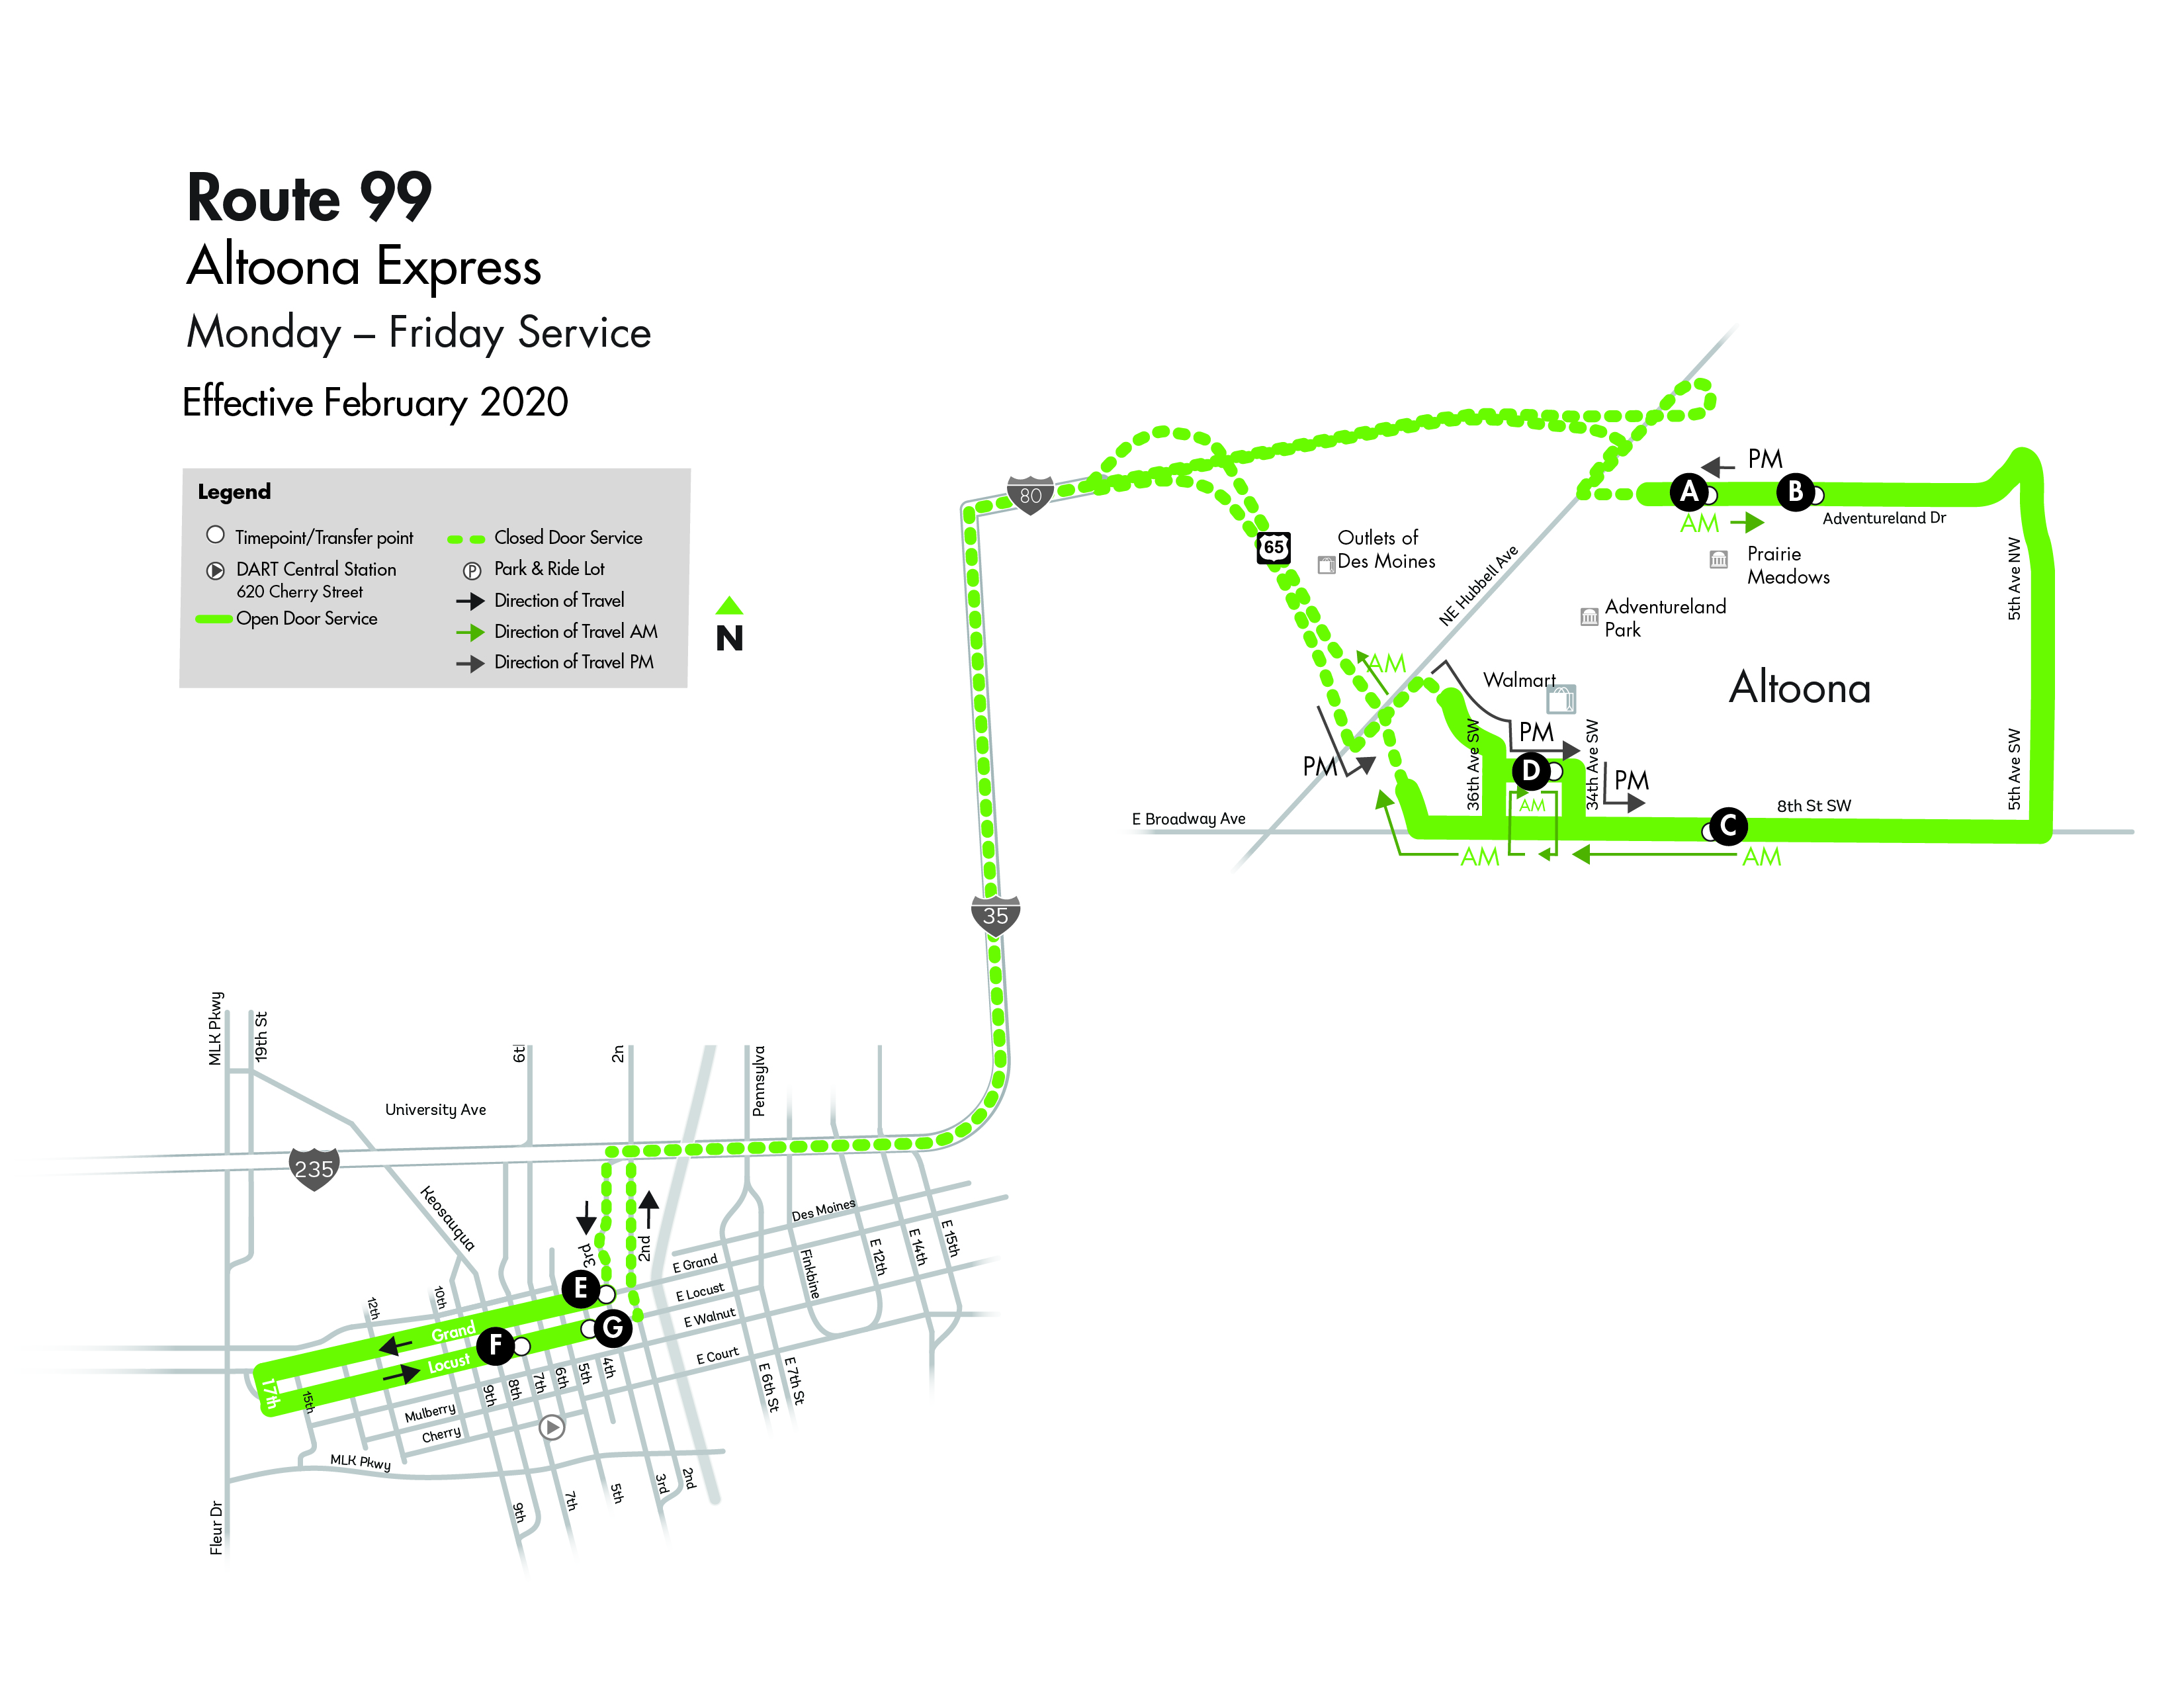 DART Express Route 99 - Altoona Map